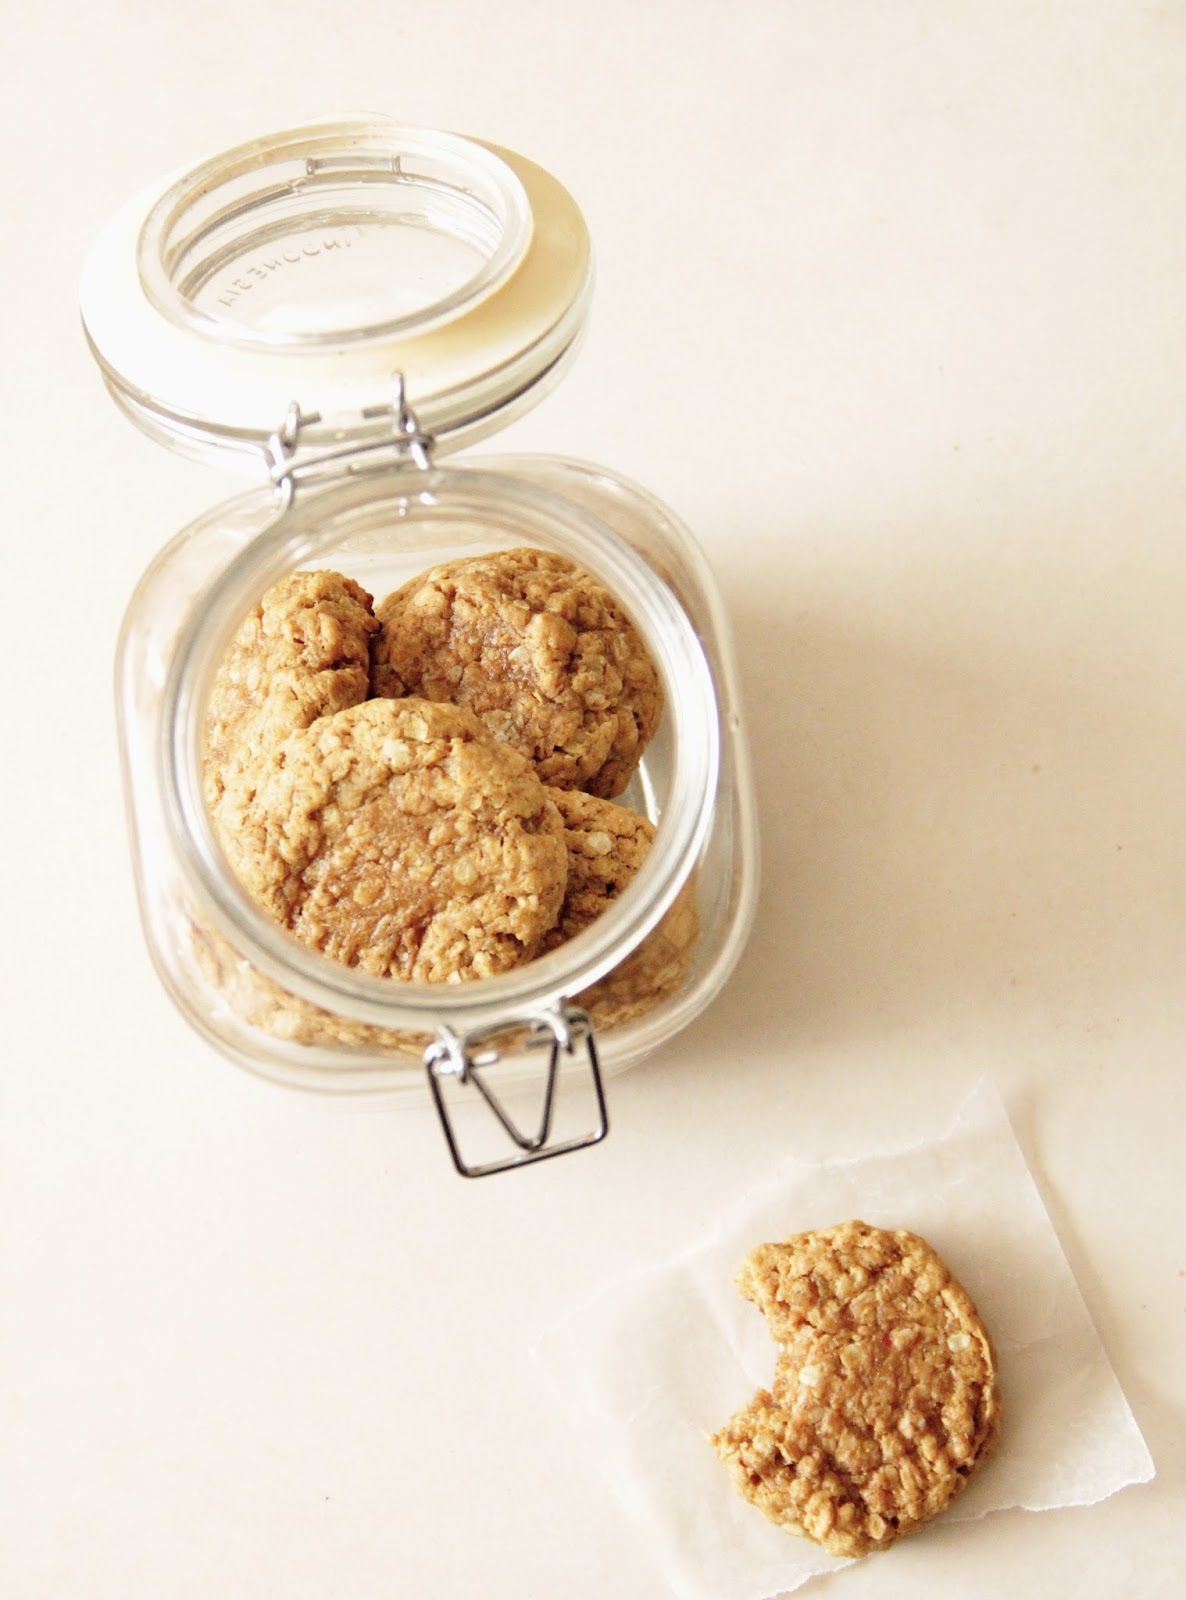 My Happy Place: chewy peanut butter oatmeal cookies